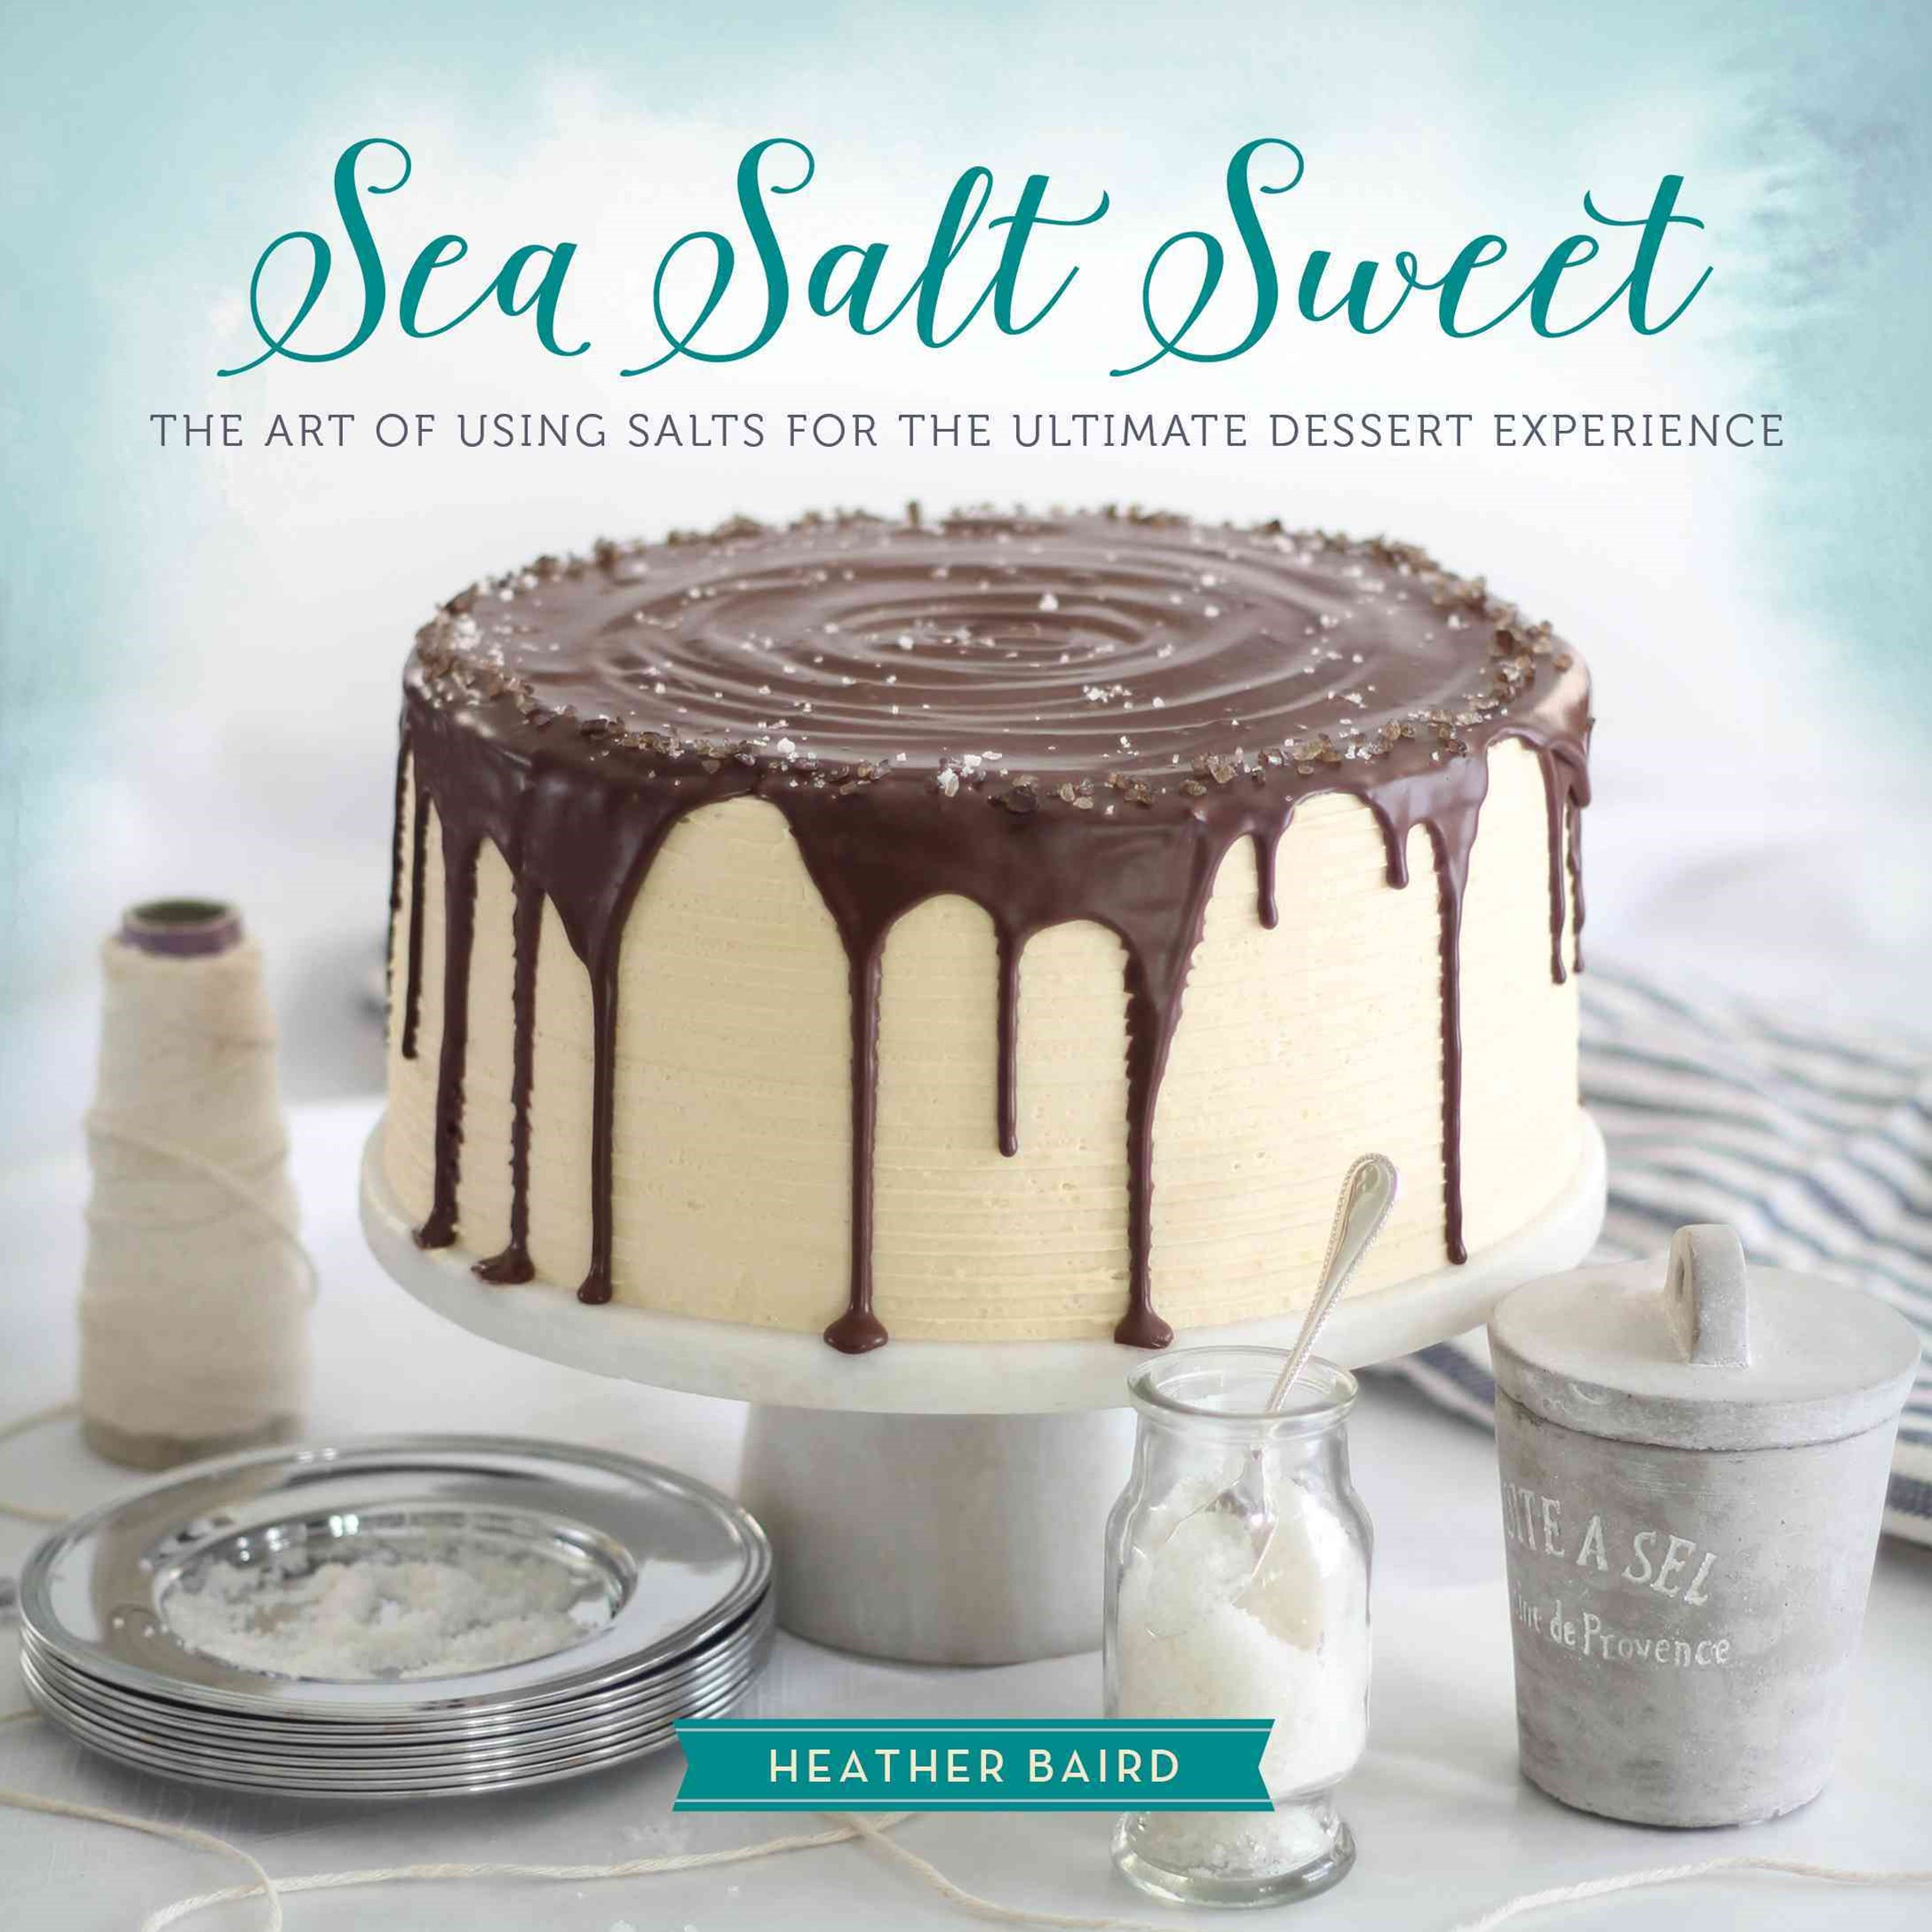 Sea Salt Sweet